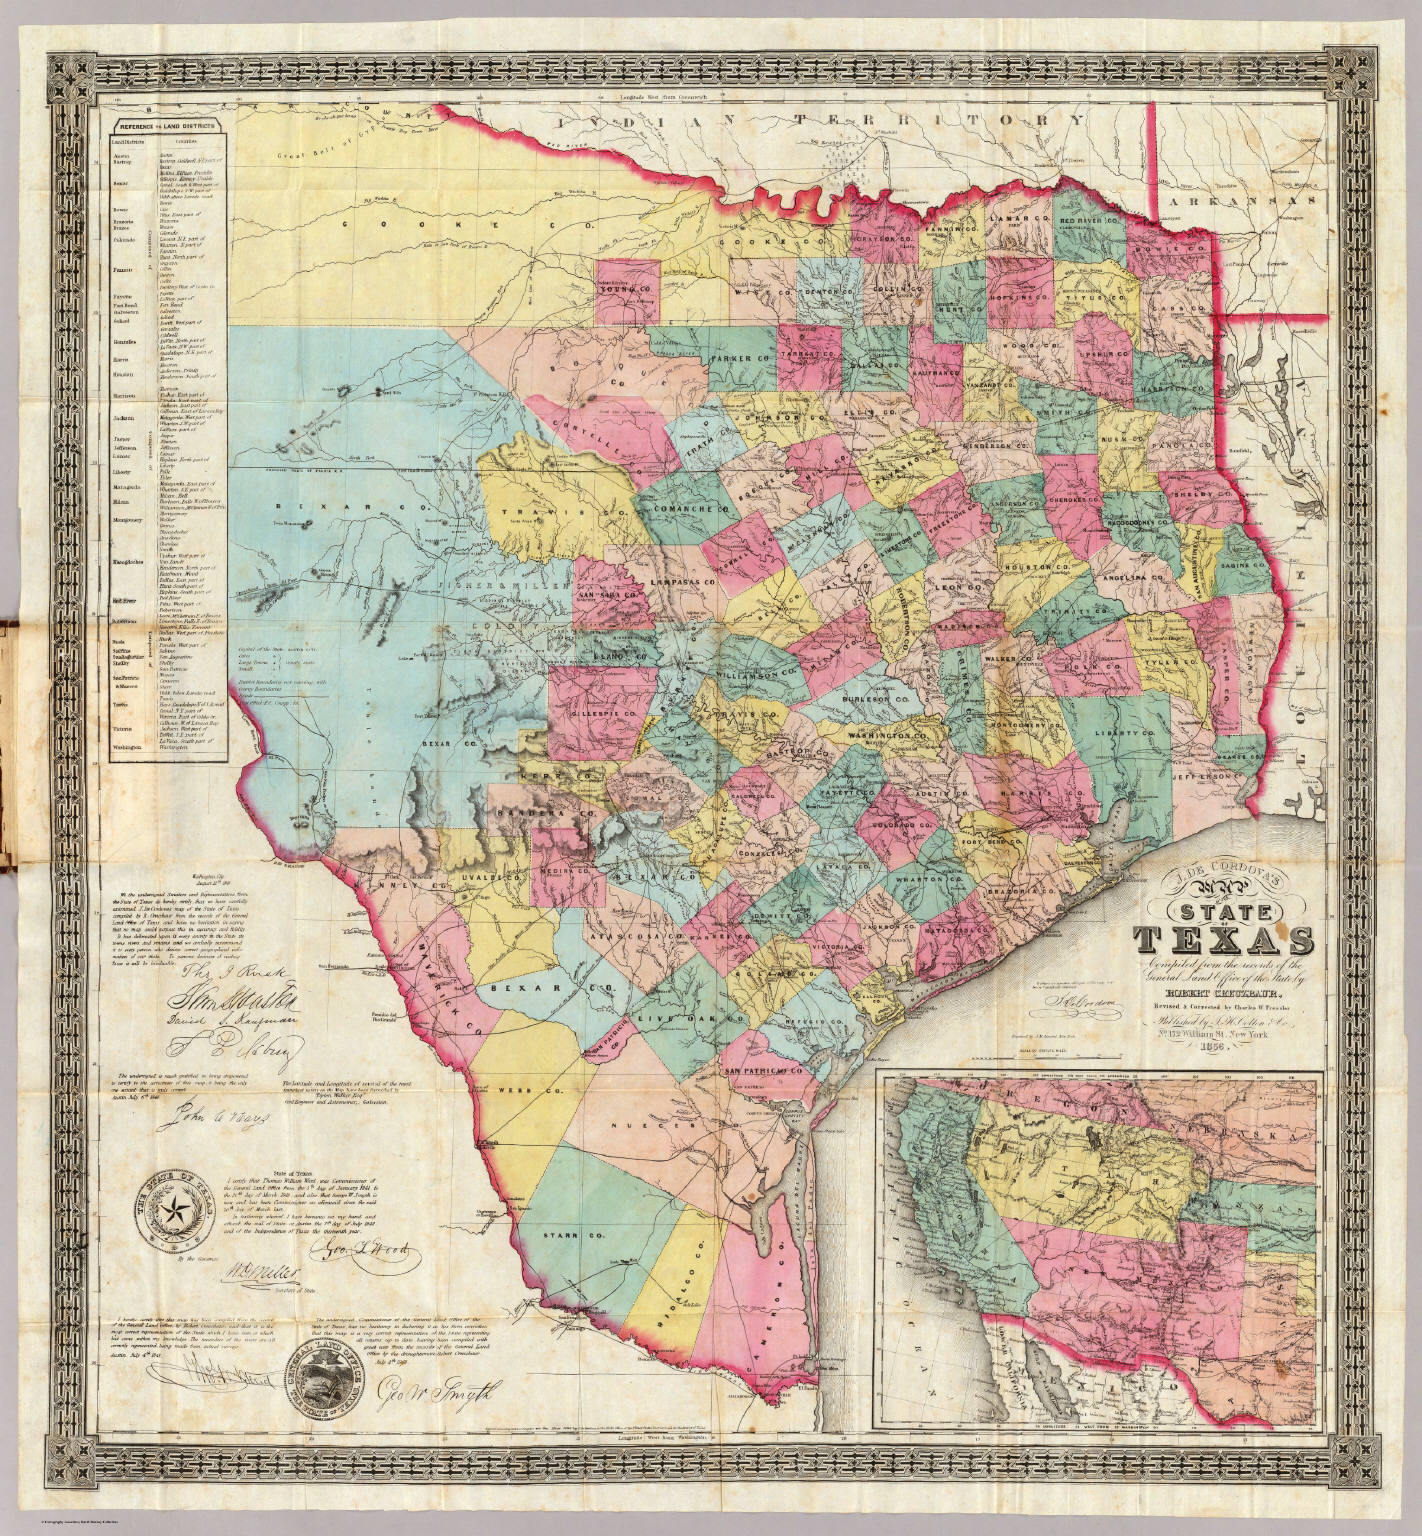 Worksheet. J De Cordovas Map Of The State Of Texas  David Rumsey